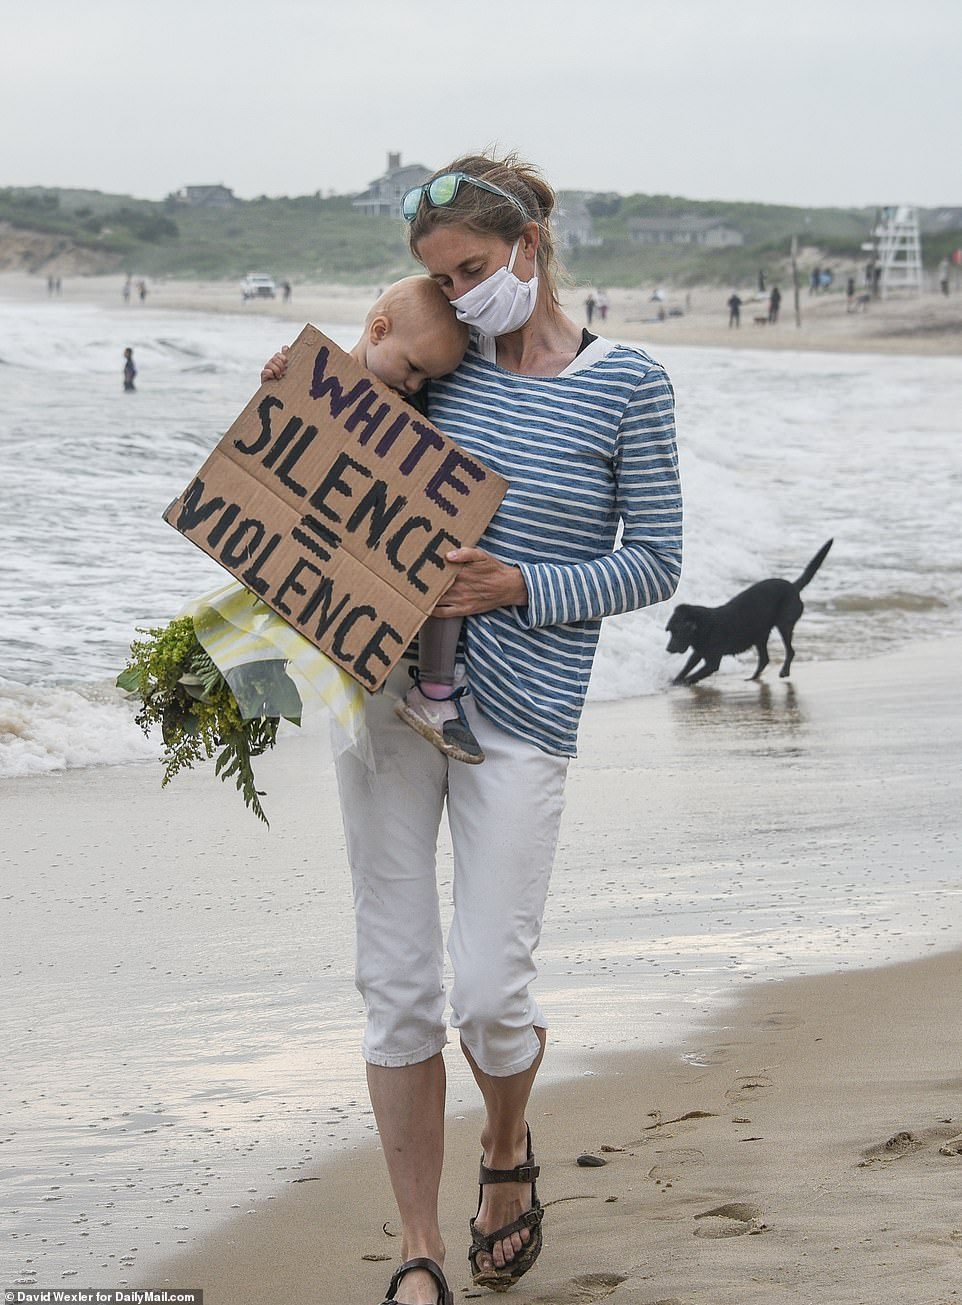 29286954-8393847-MONTAUK_THE_HAMPTONS_One_mom_also_bought_flowers_to_lay_on_the_s-a-18_1591416764868